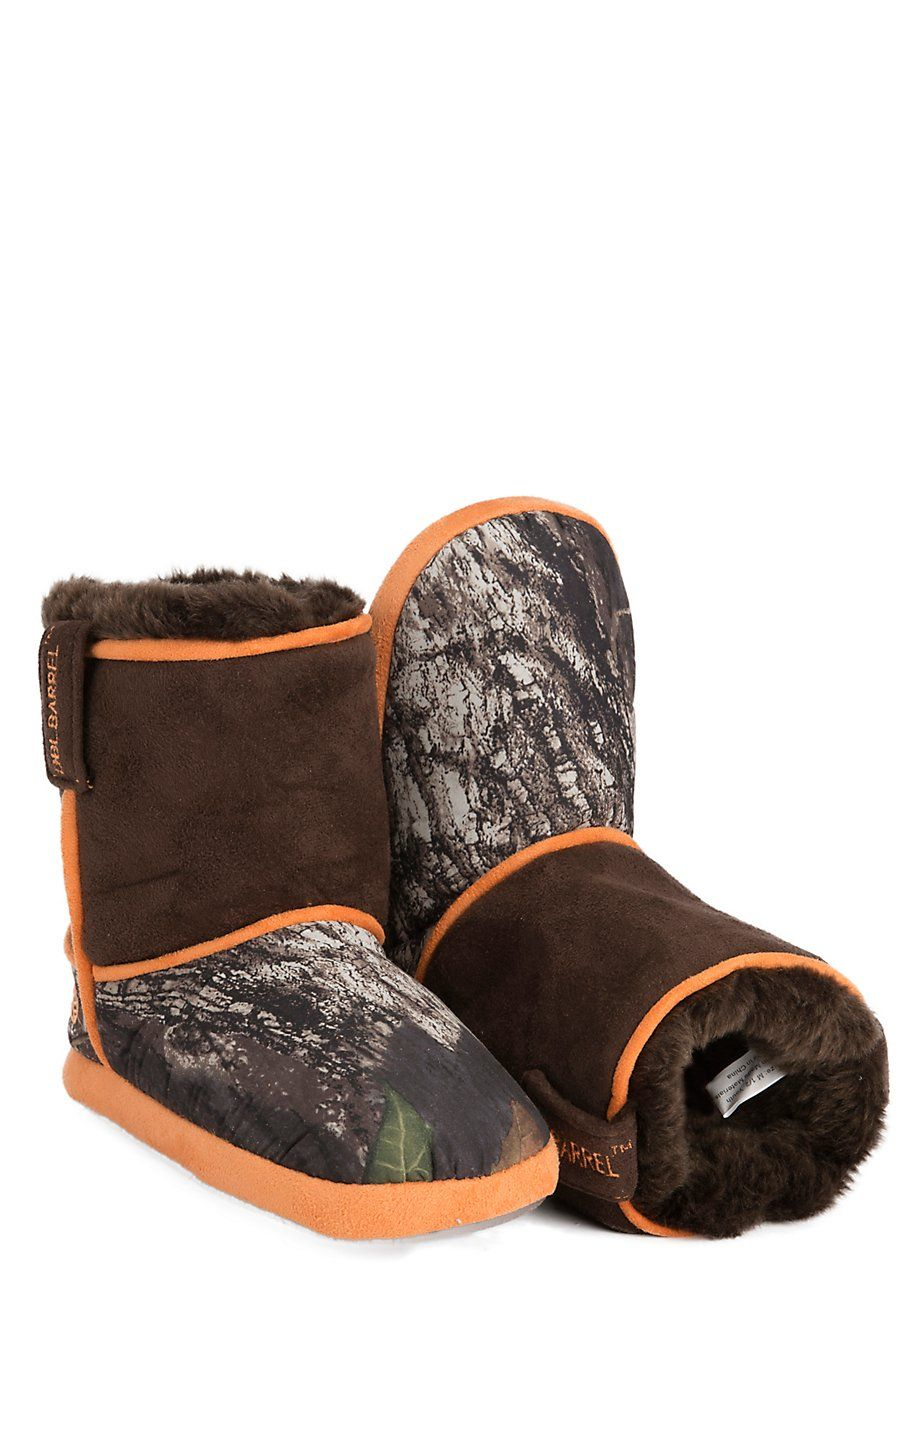 Dbl Barrel 174 Kid S Brown With Orange Camouflage Cowboy Boot